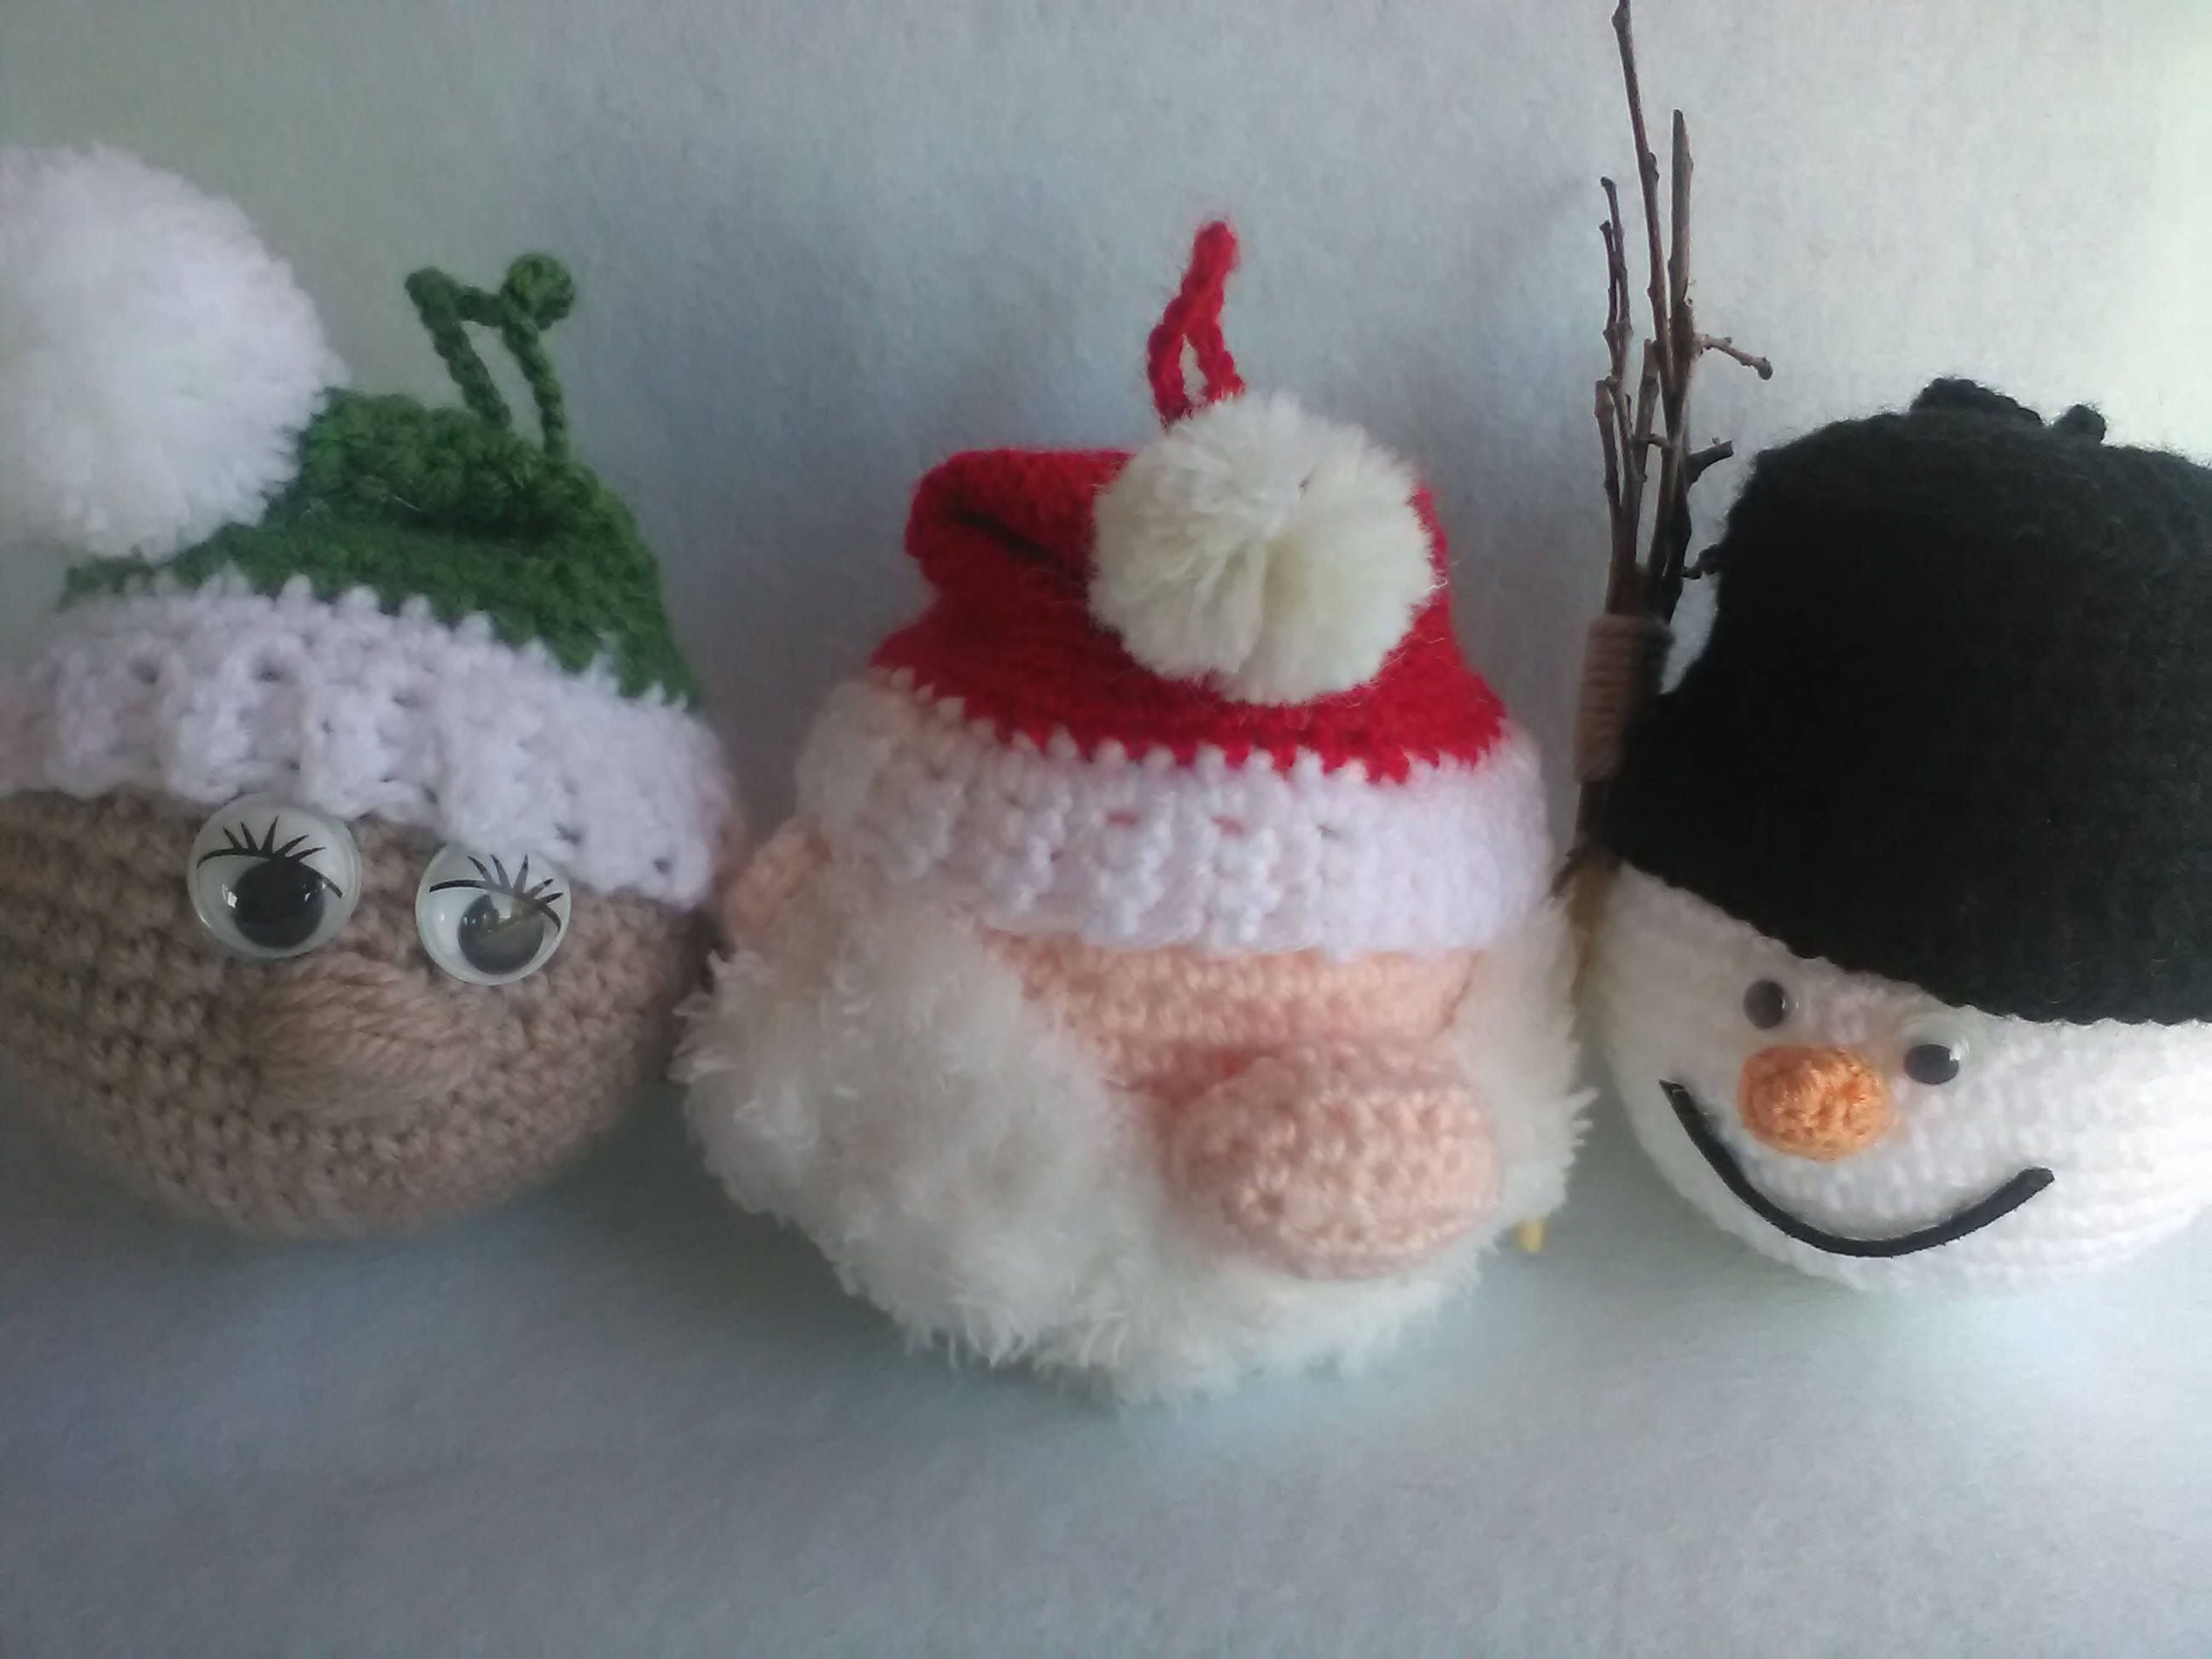 PALLINA DI NATALE RIVESTITA AD UNCINETTO ○ World Of Amigurumi - YouTube | 1944x2592